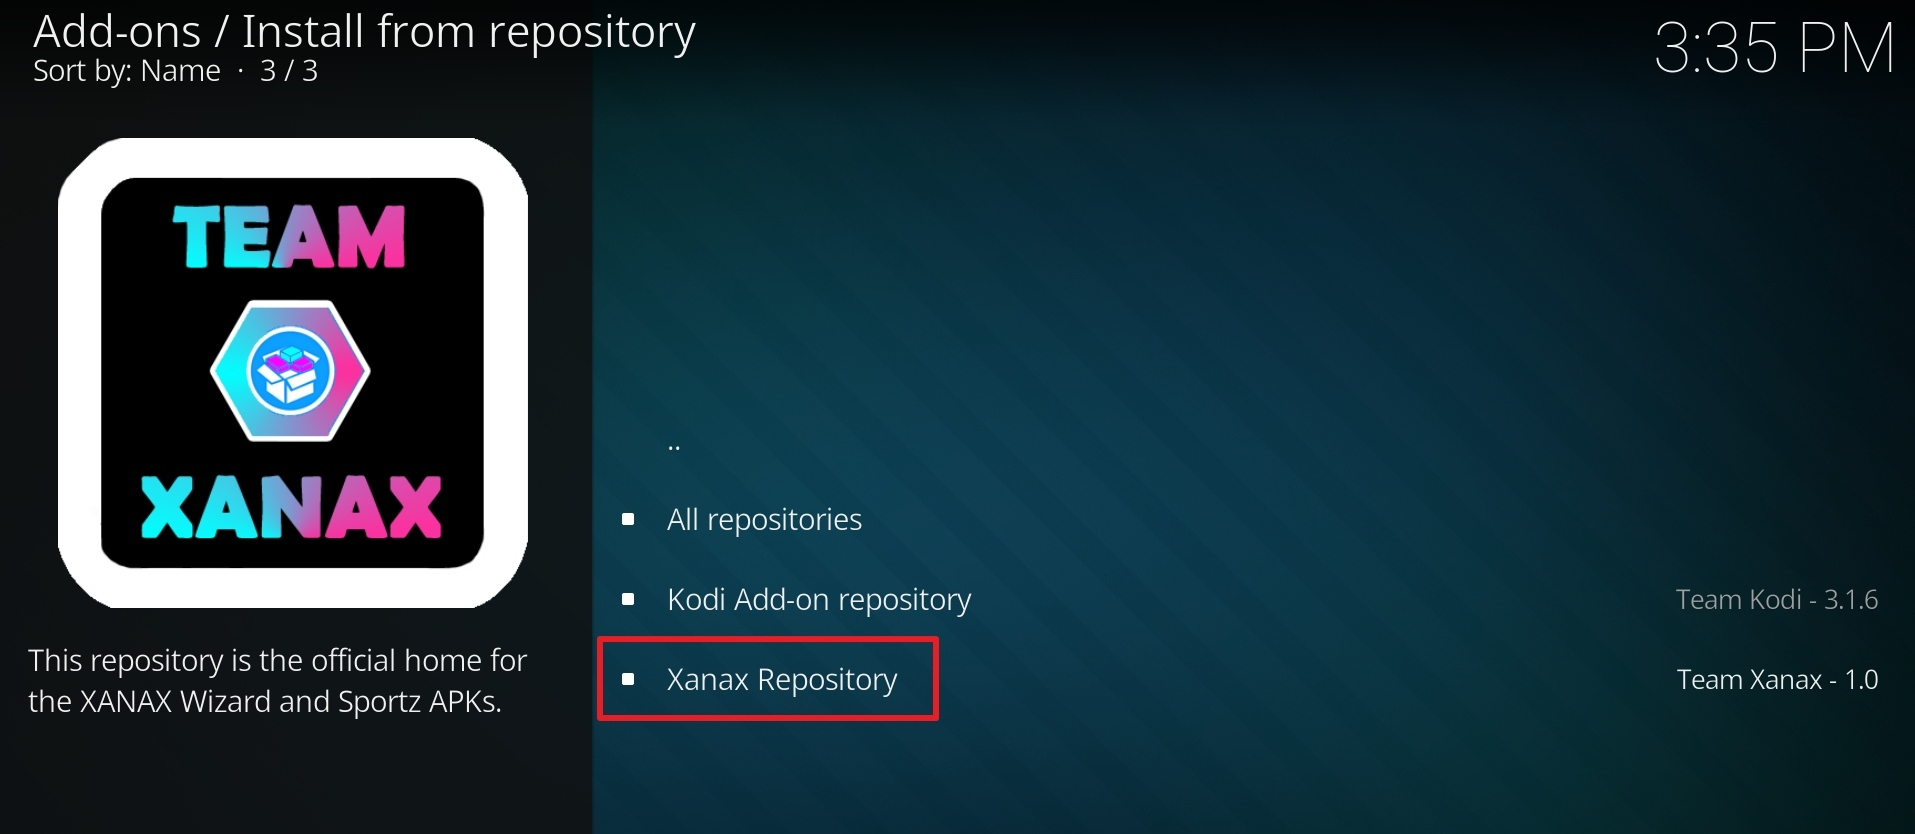 click on Xanax Repository